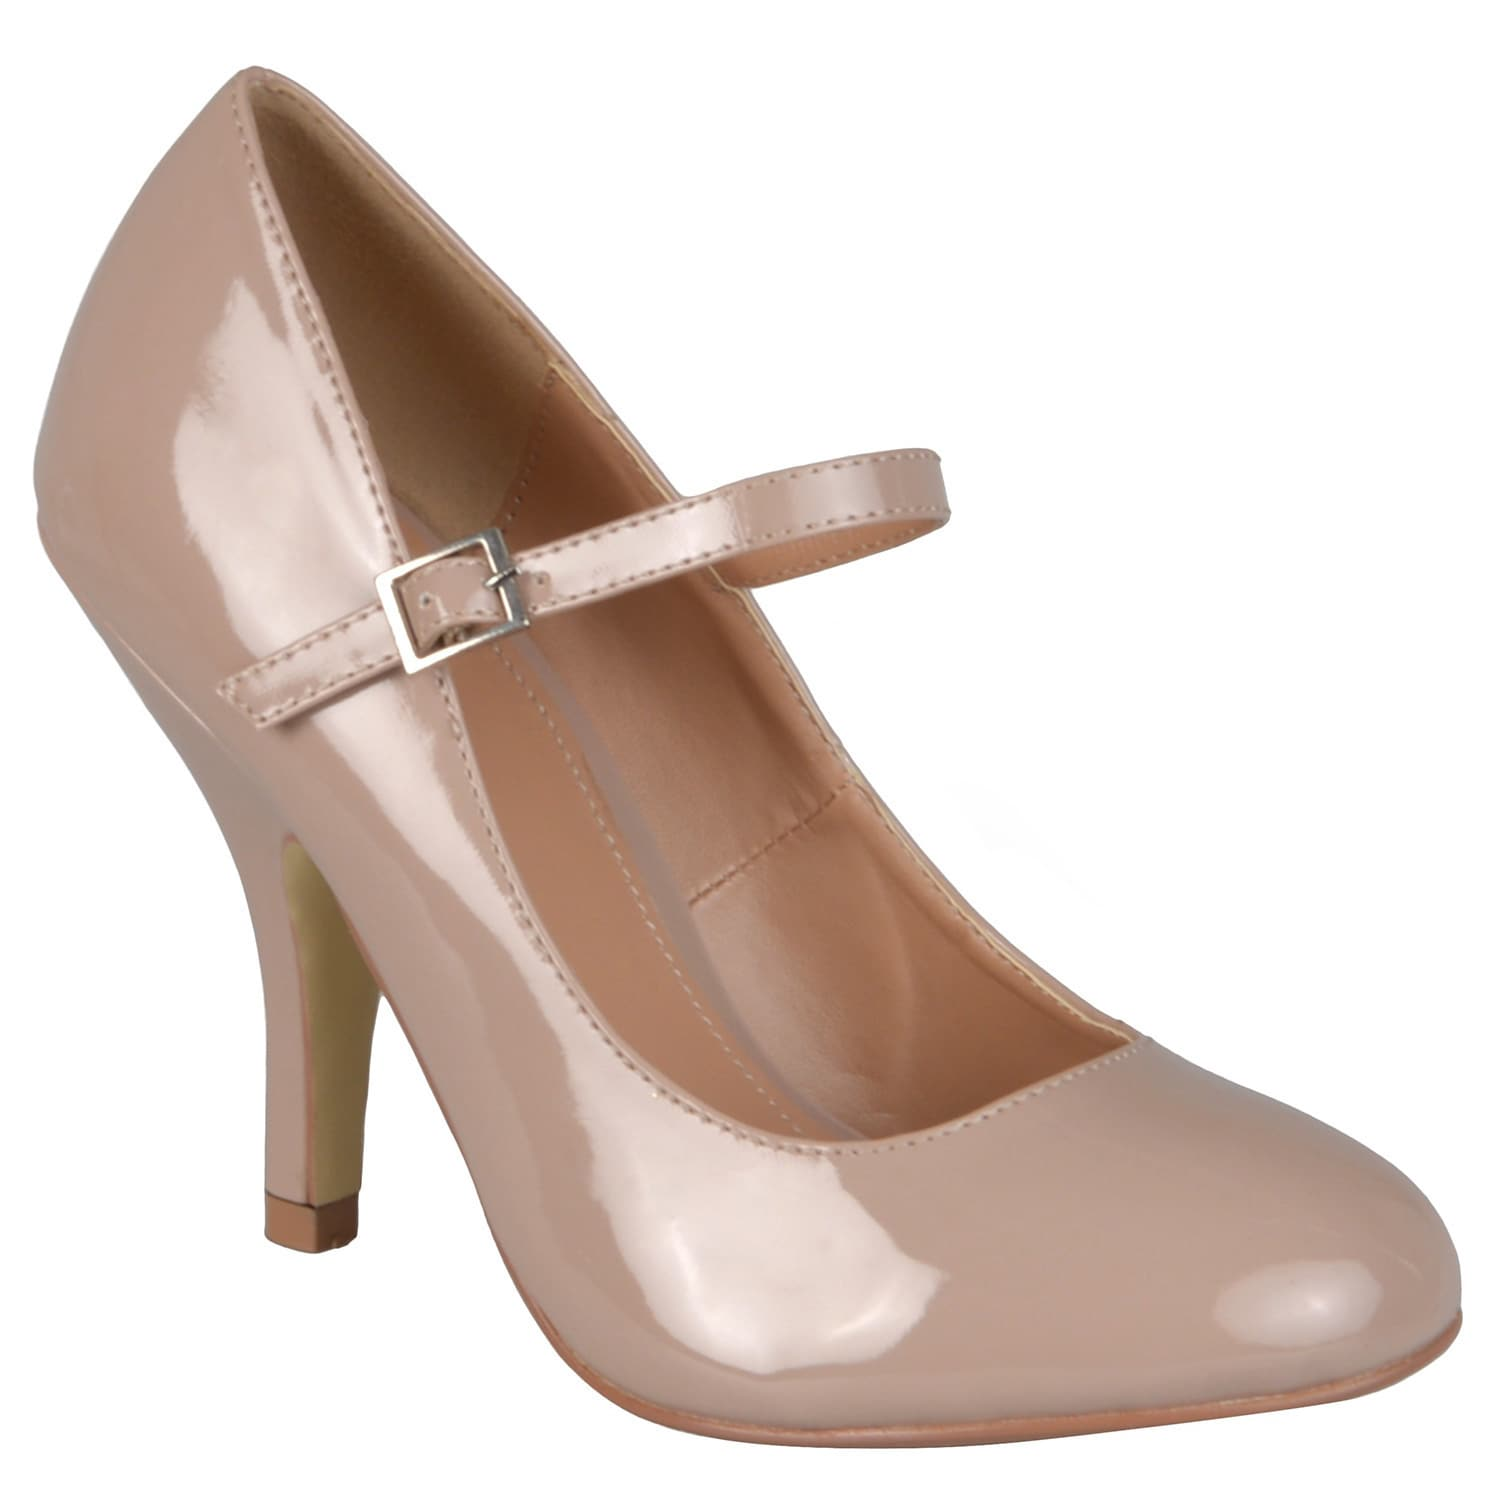 34125f2fd726 Shop Journee Collection Women s  Leslie  Patent Round Toe Mary Jane Pumps -  On Sale - Free Shipping On Orders Over  45 - Overstock - 7279889